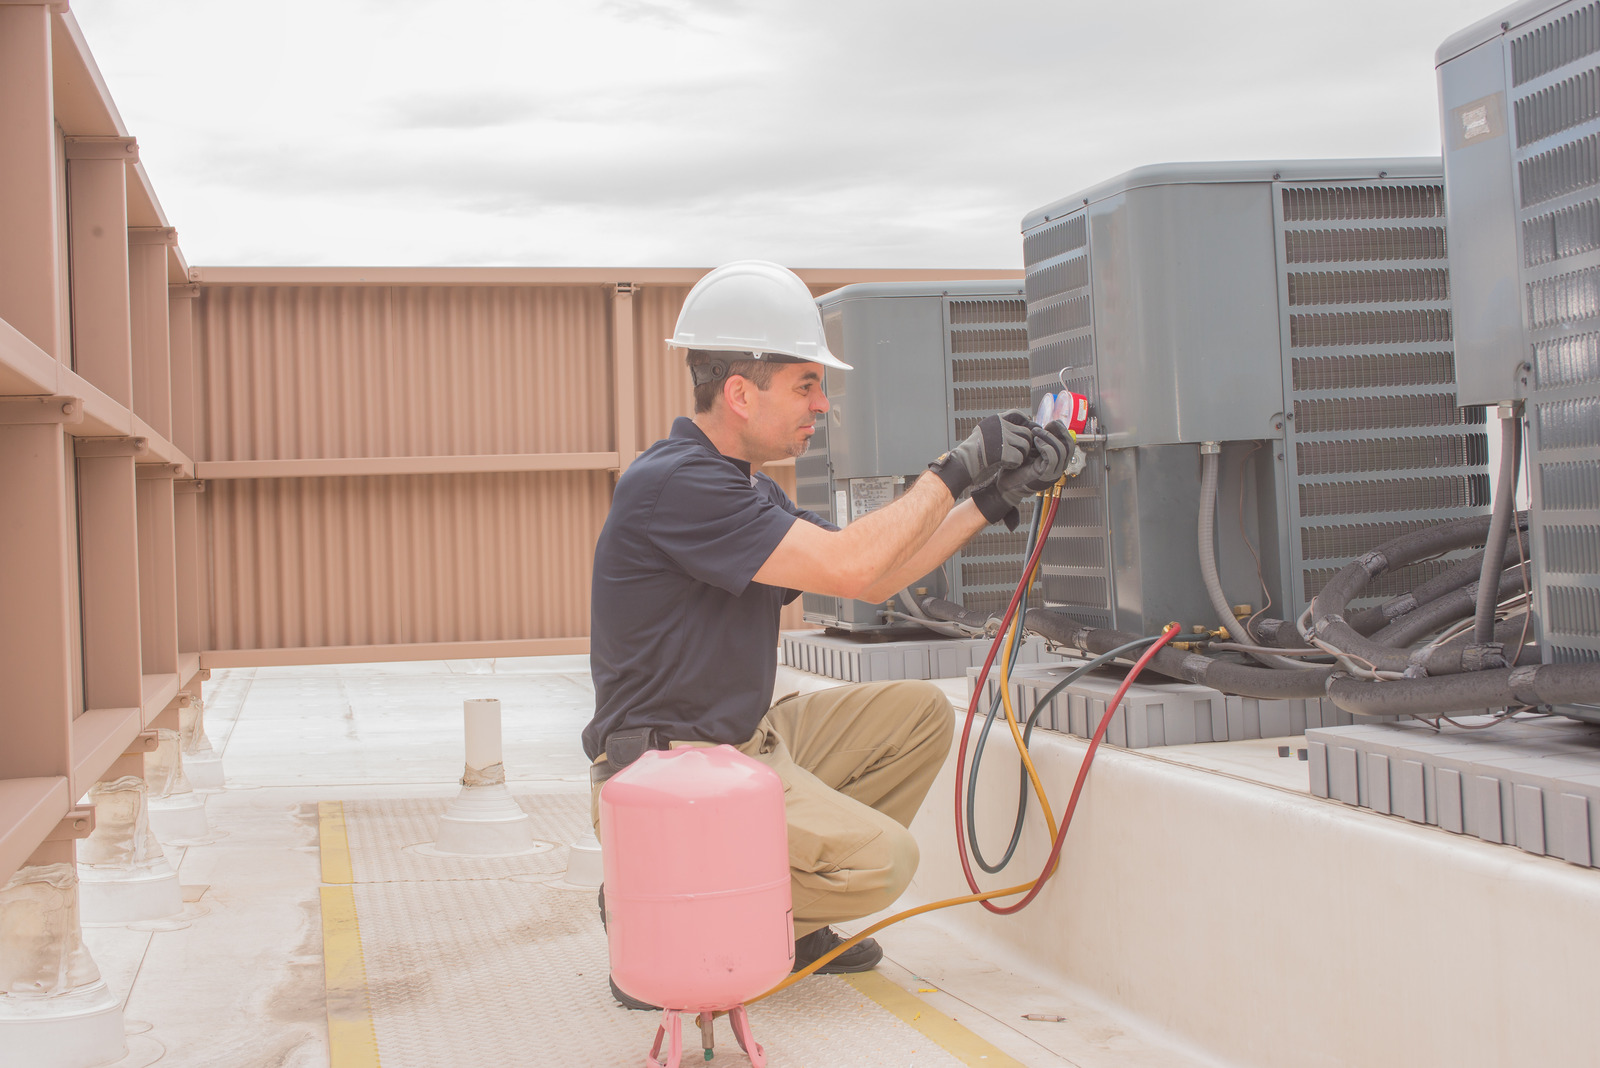 5 Latest Innovations Shaping the HVAC Industry